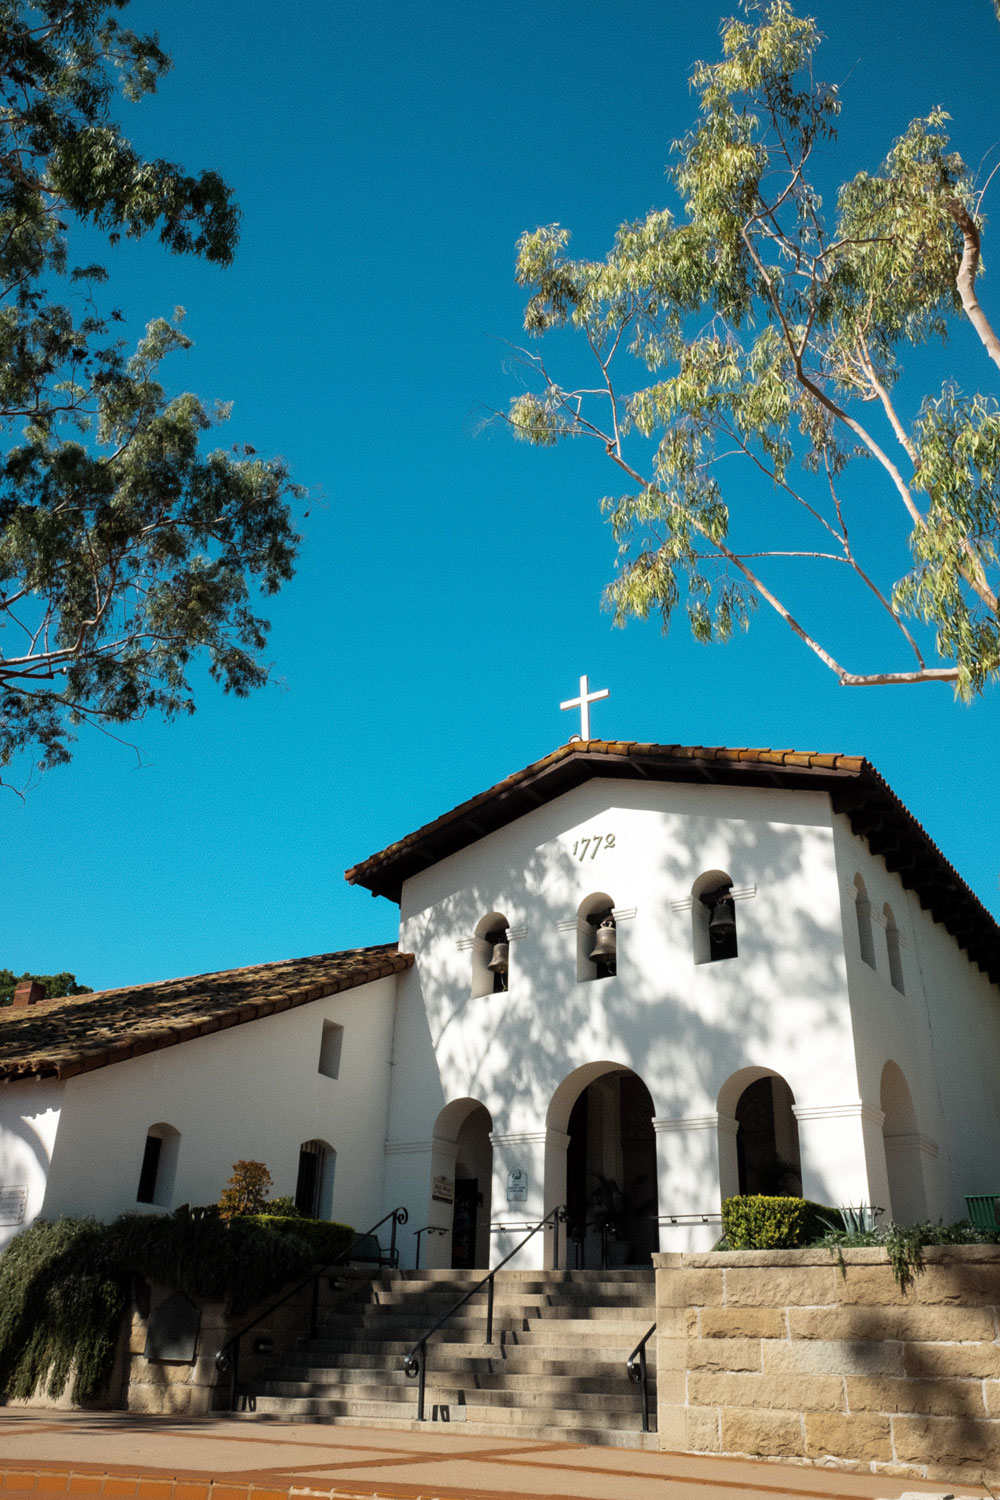 mission san luis obispo by To Vogue or Bust